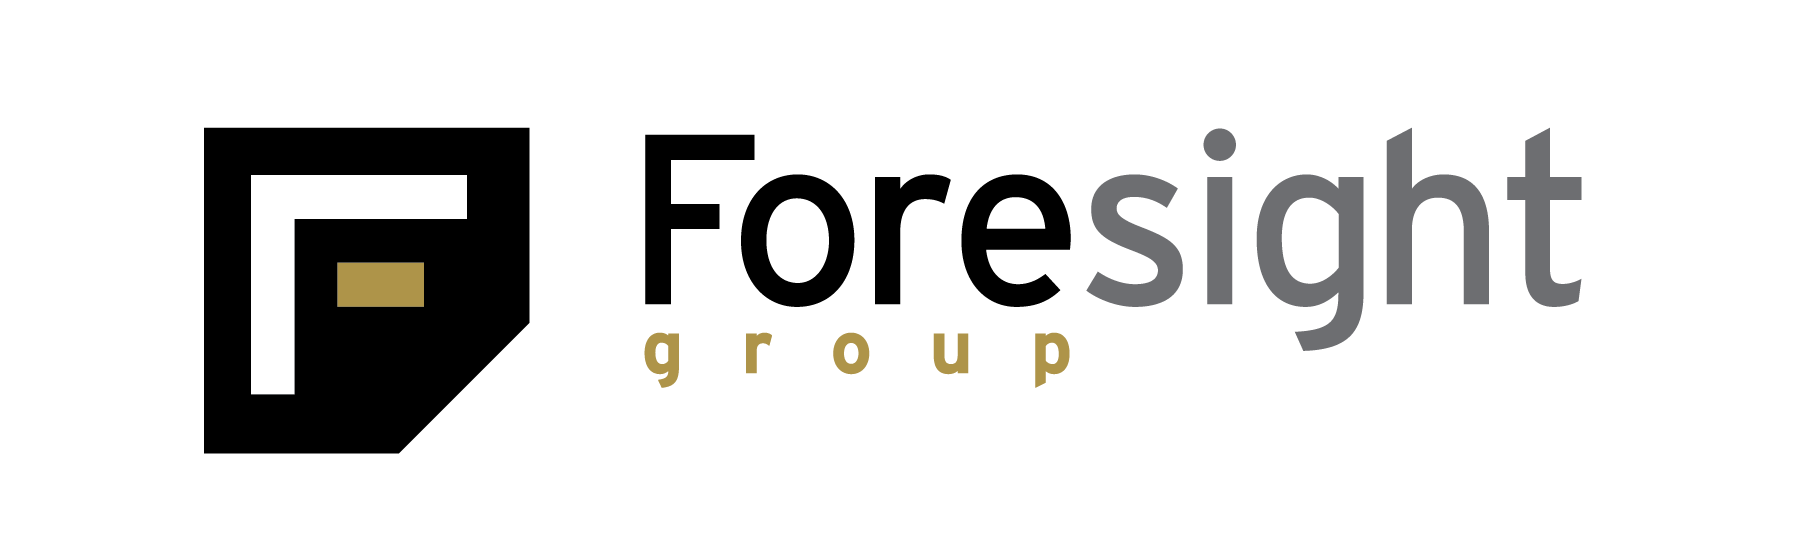 Investment by Foresight Group in Spektrix ltd Logo